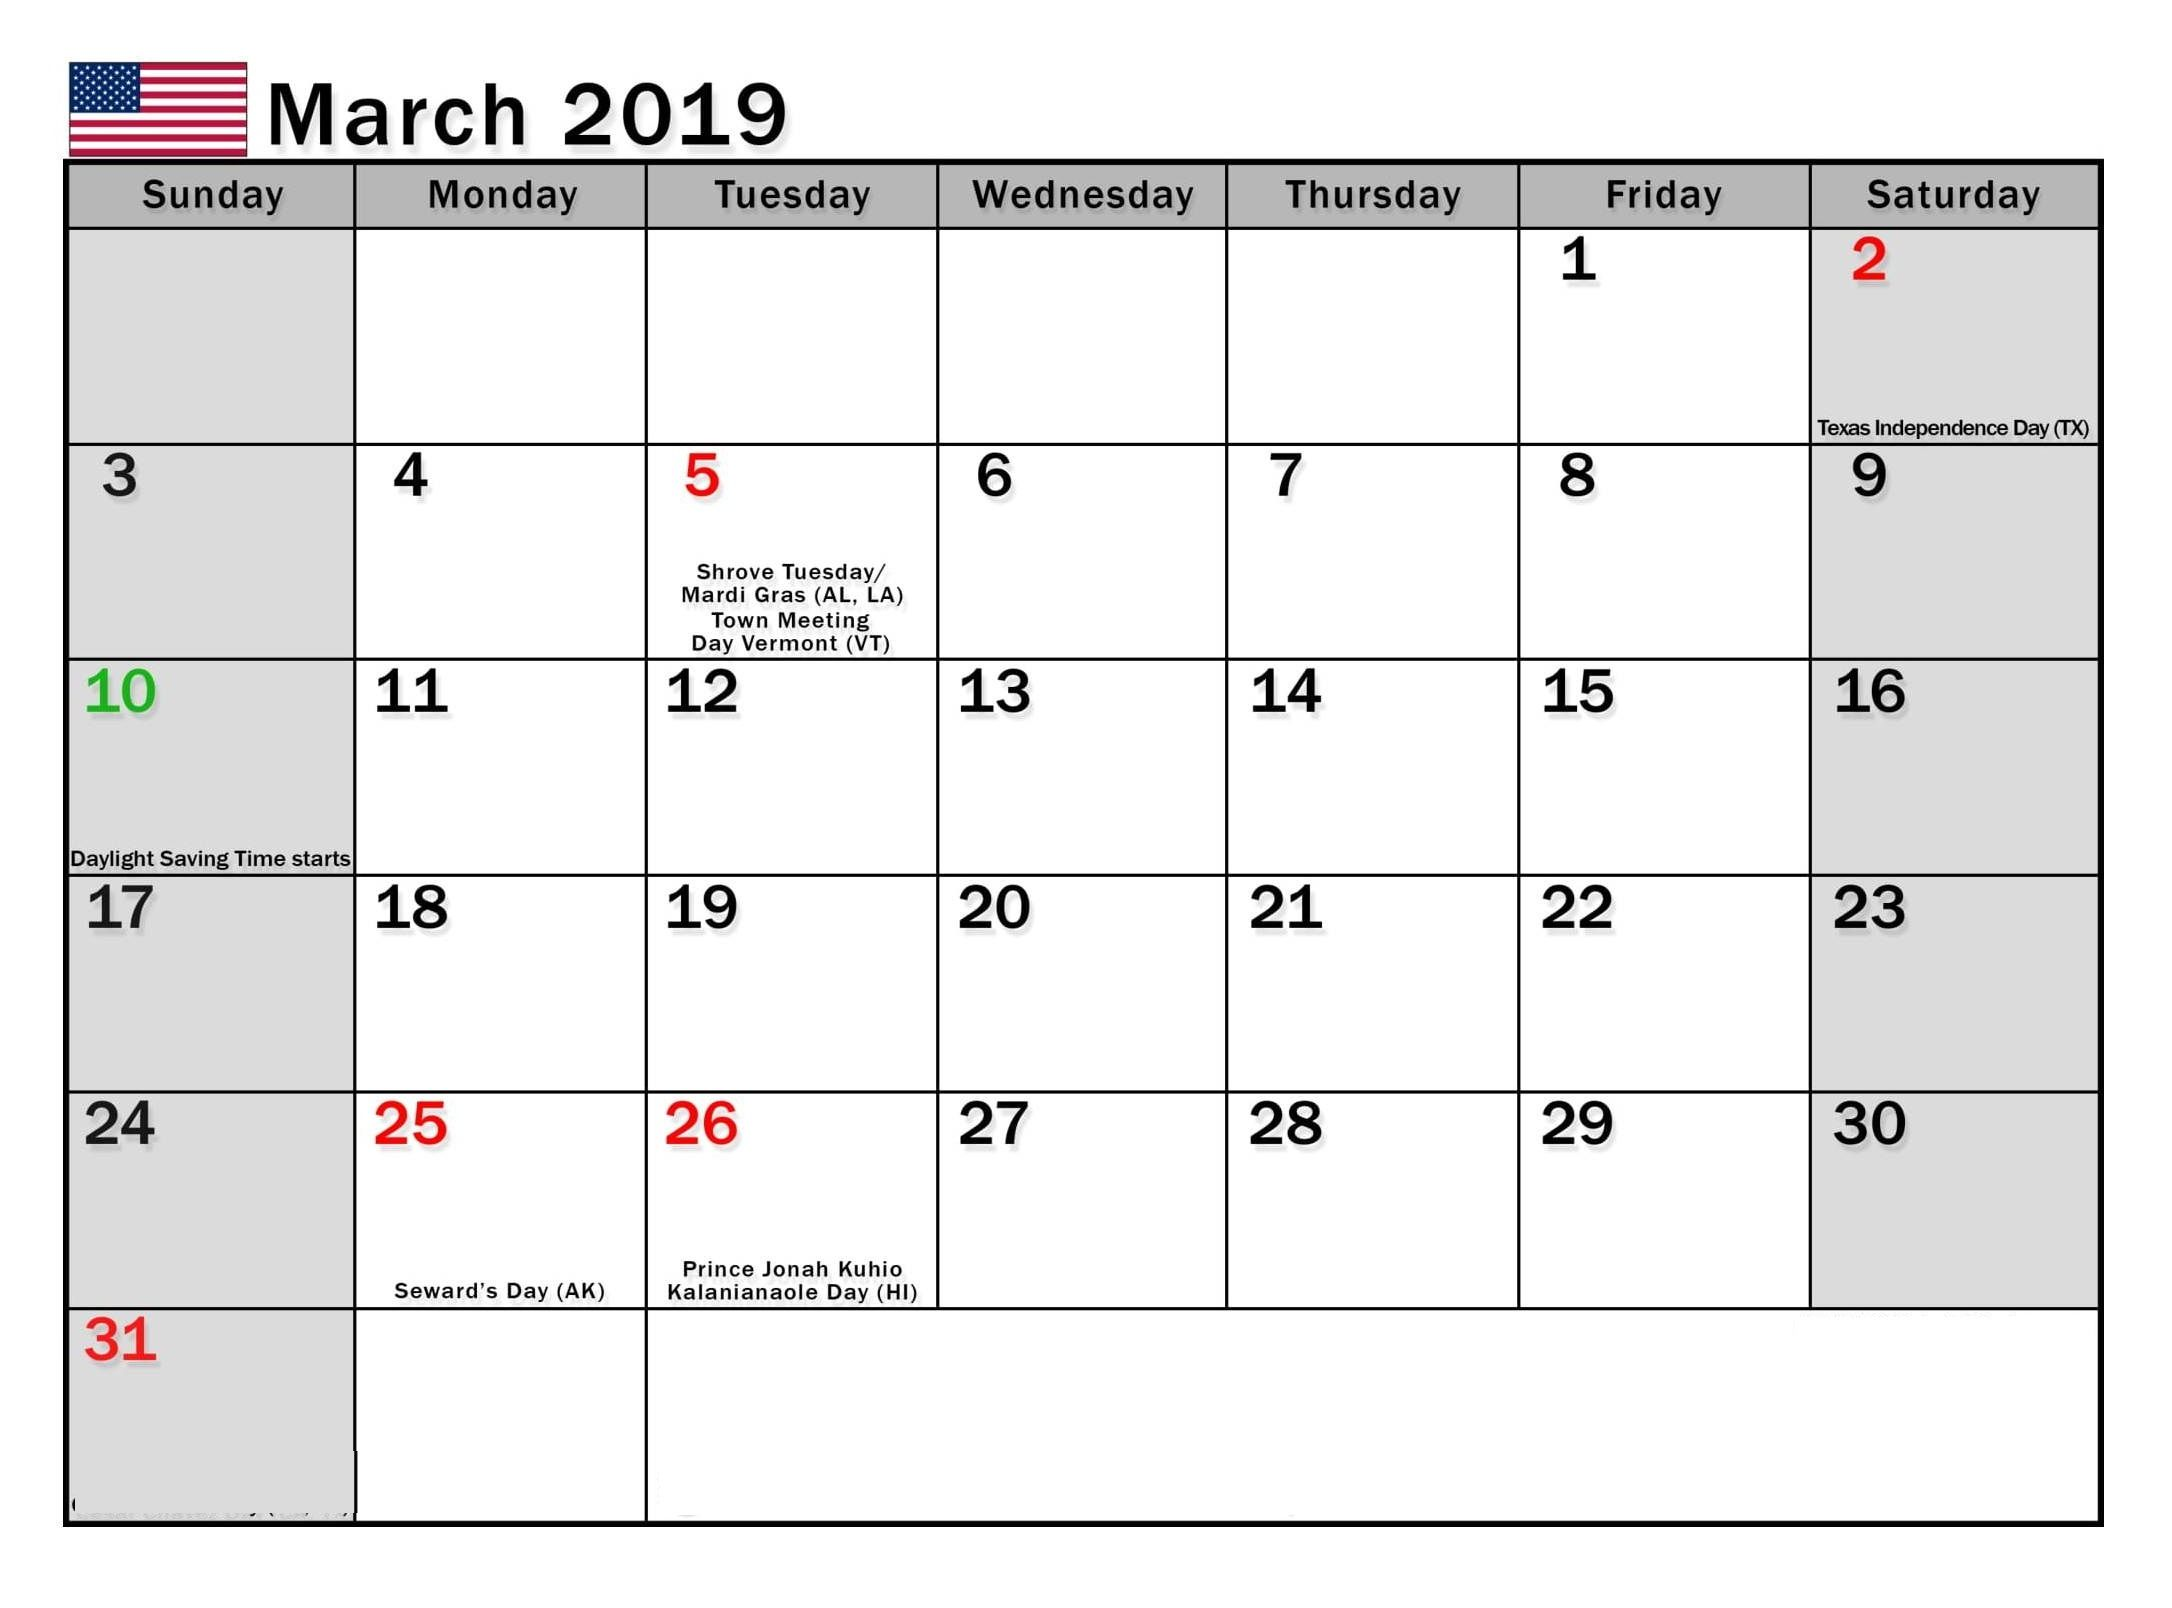 March 2019 Holidays Calendar Printable Holiday Calendar